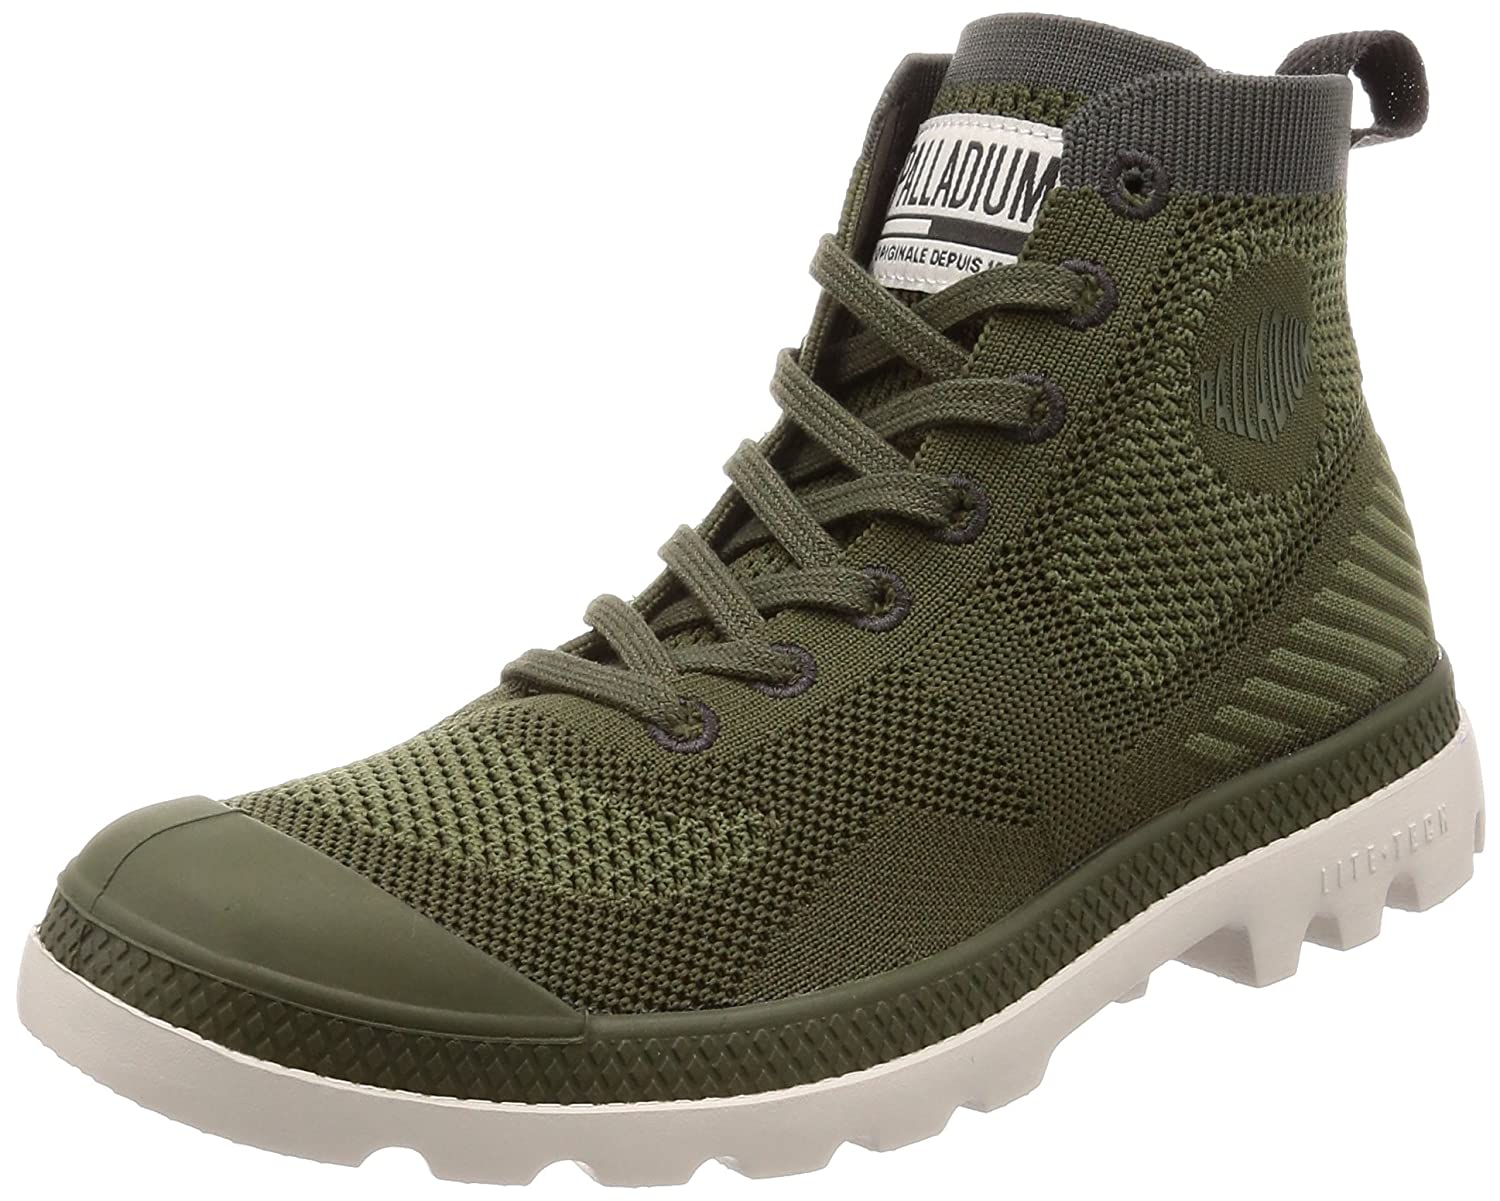 Palladium Pampa Hi Lite K Ankle Boot B074B942TY 9.5 M US|Green-338